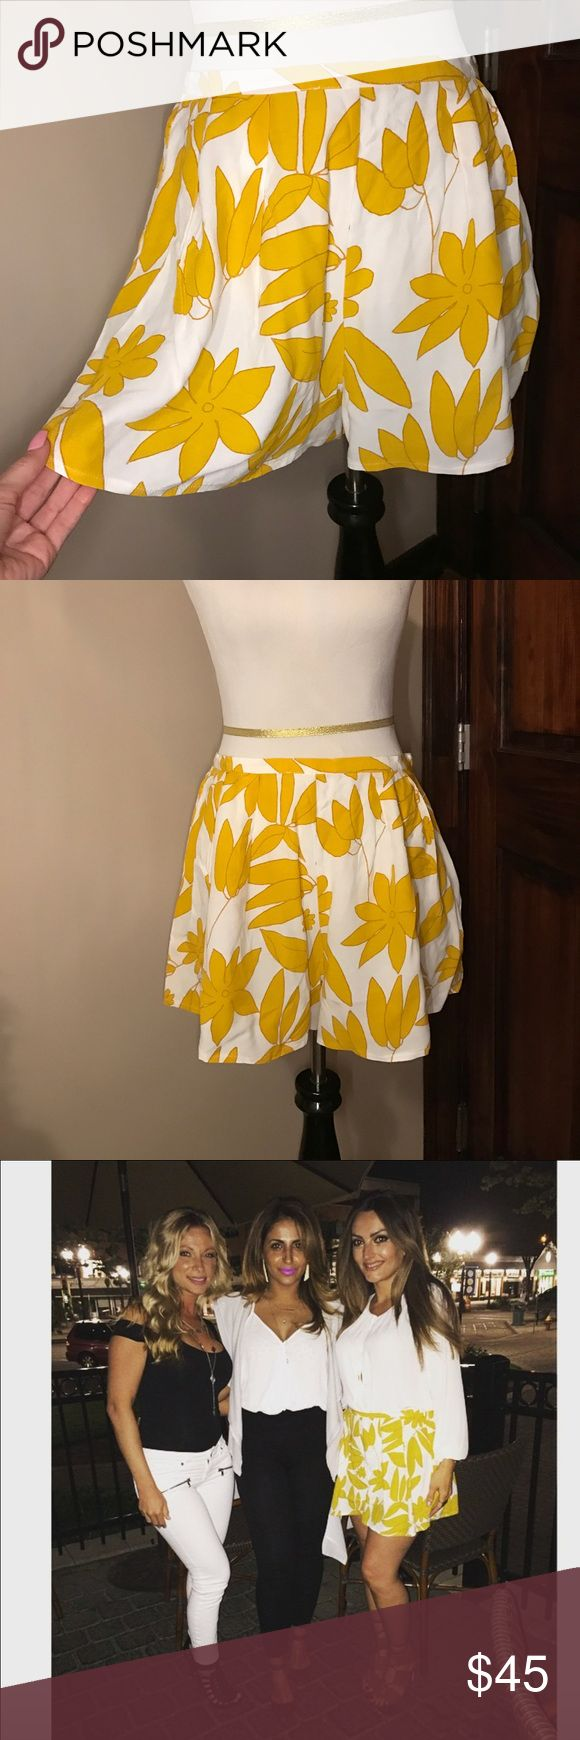 ASOS Floral Culotte Shorts Size US 8.  100% viscose.  Cream with yellow flowers.  Flowy culotte fit.  Slight pleats at top front and back.  Only worn once. ASOS Shorts